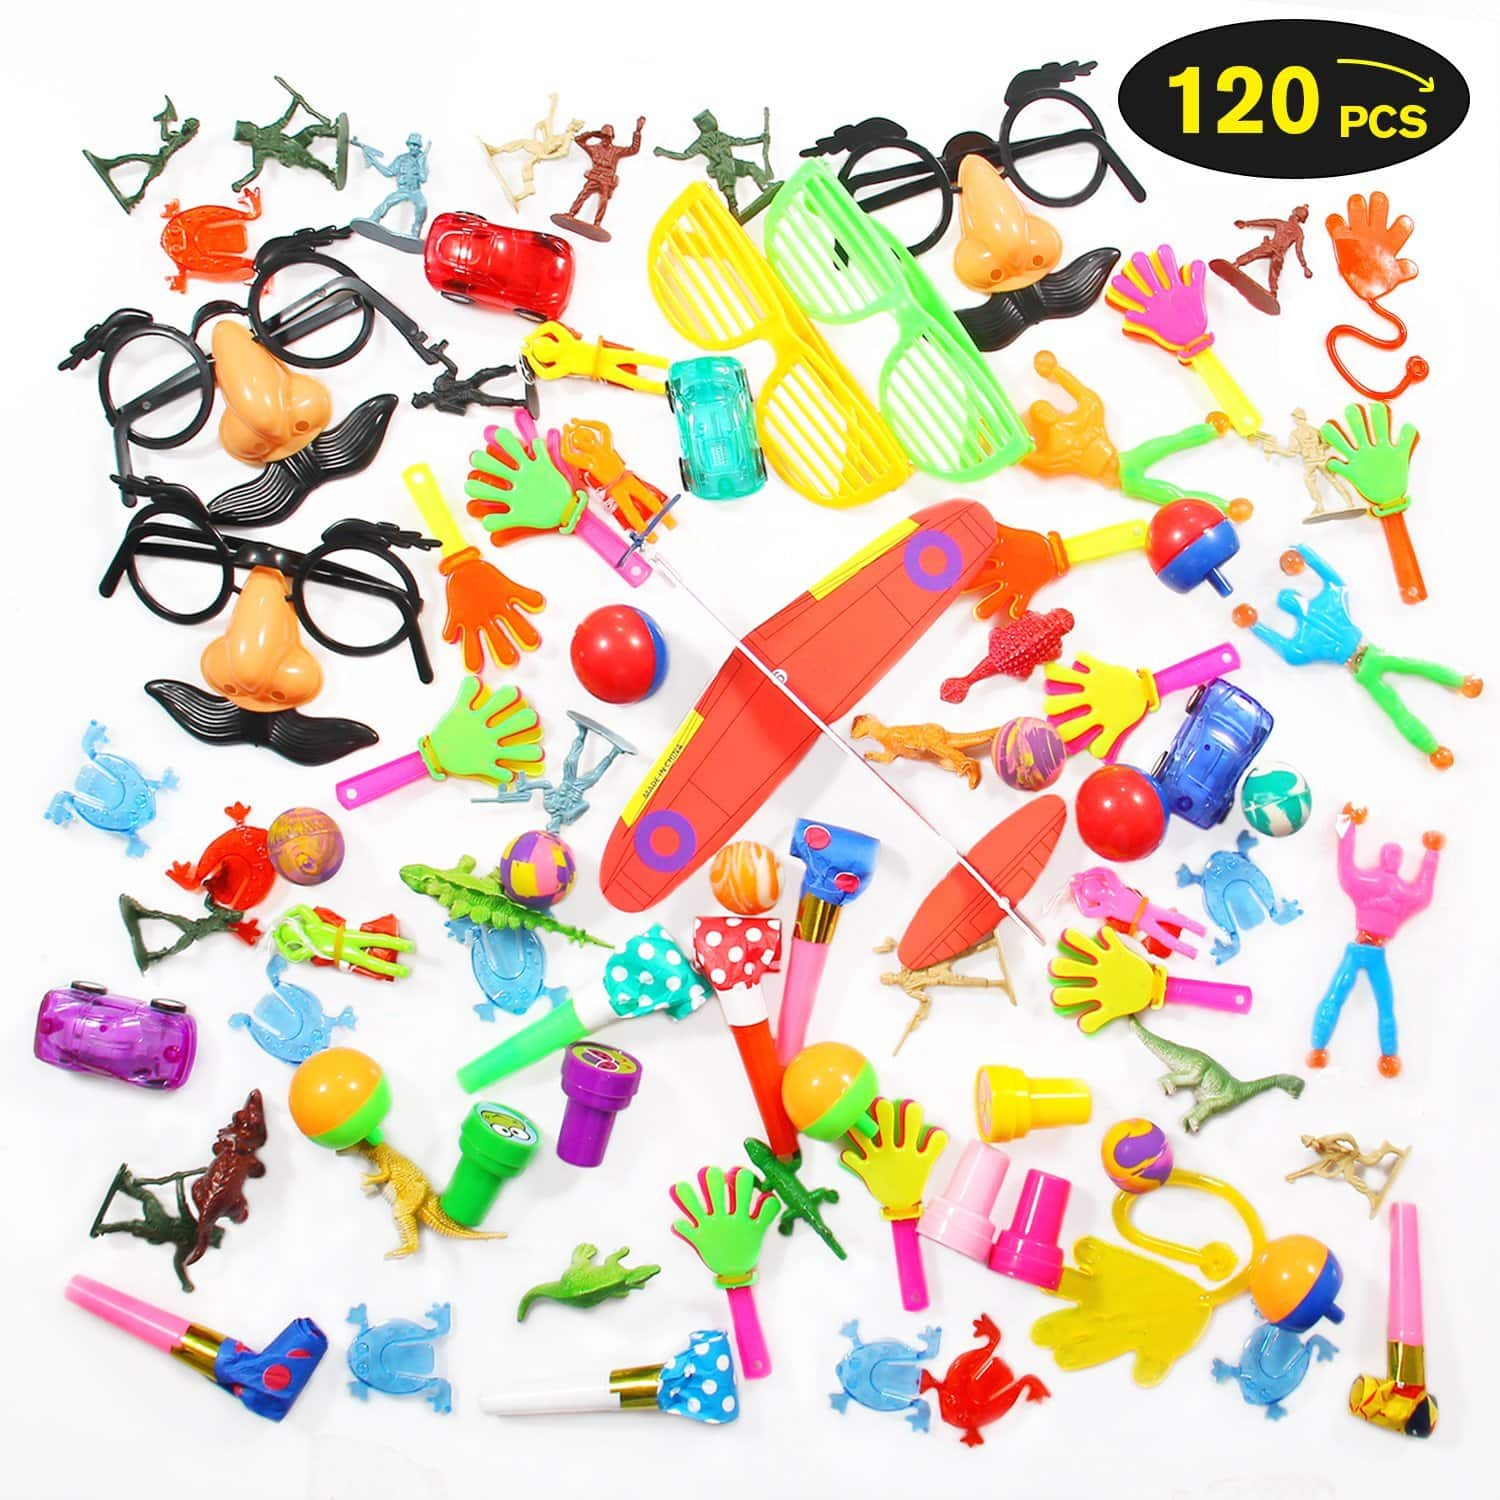 Geekper 120-Piece Pack Party Favors Toy $7.99 AC + FSSS